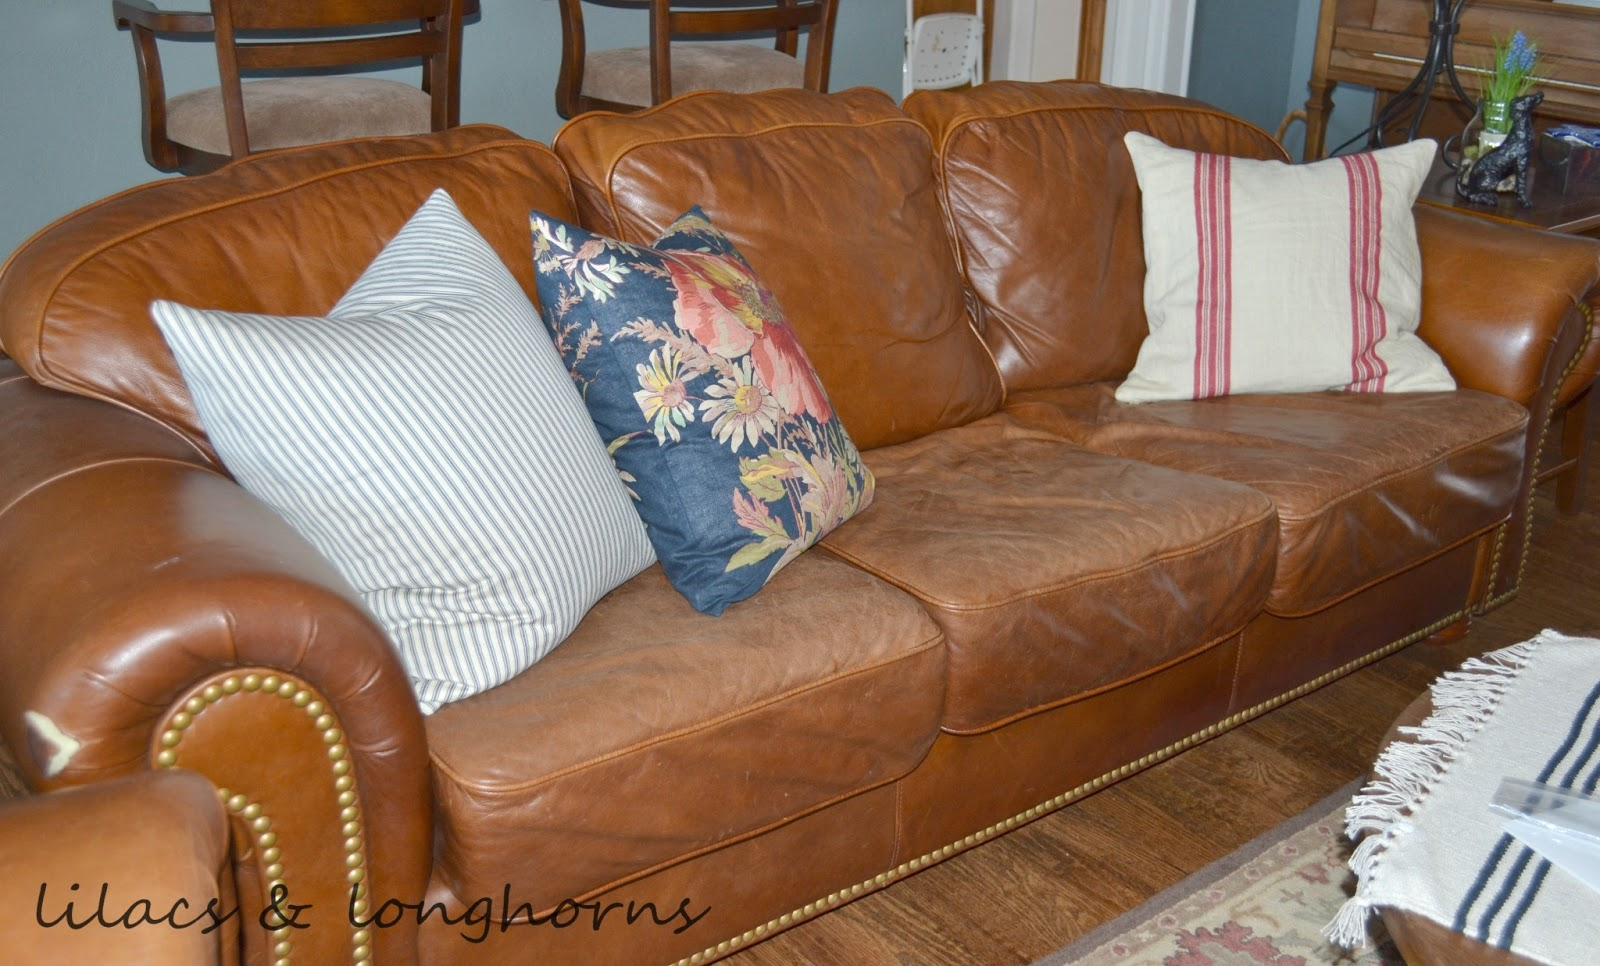 Merveilleux Repairing And Refurbishing Leather Furniture